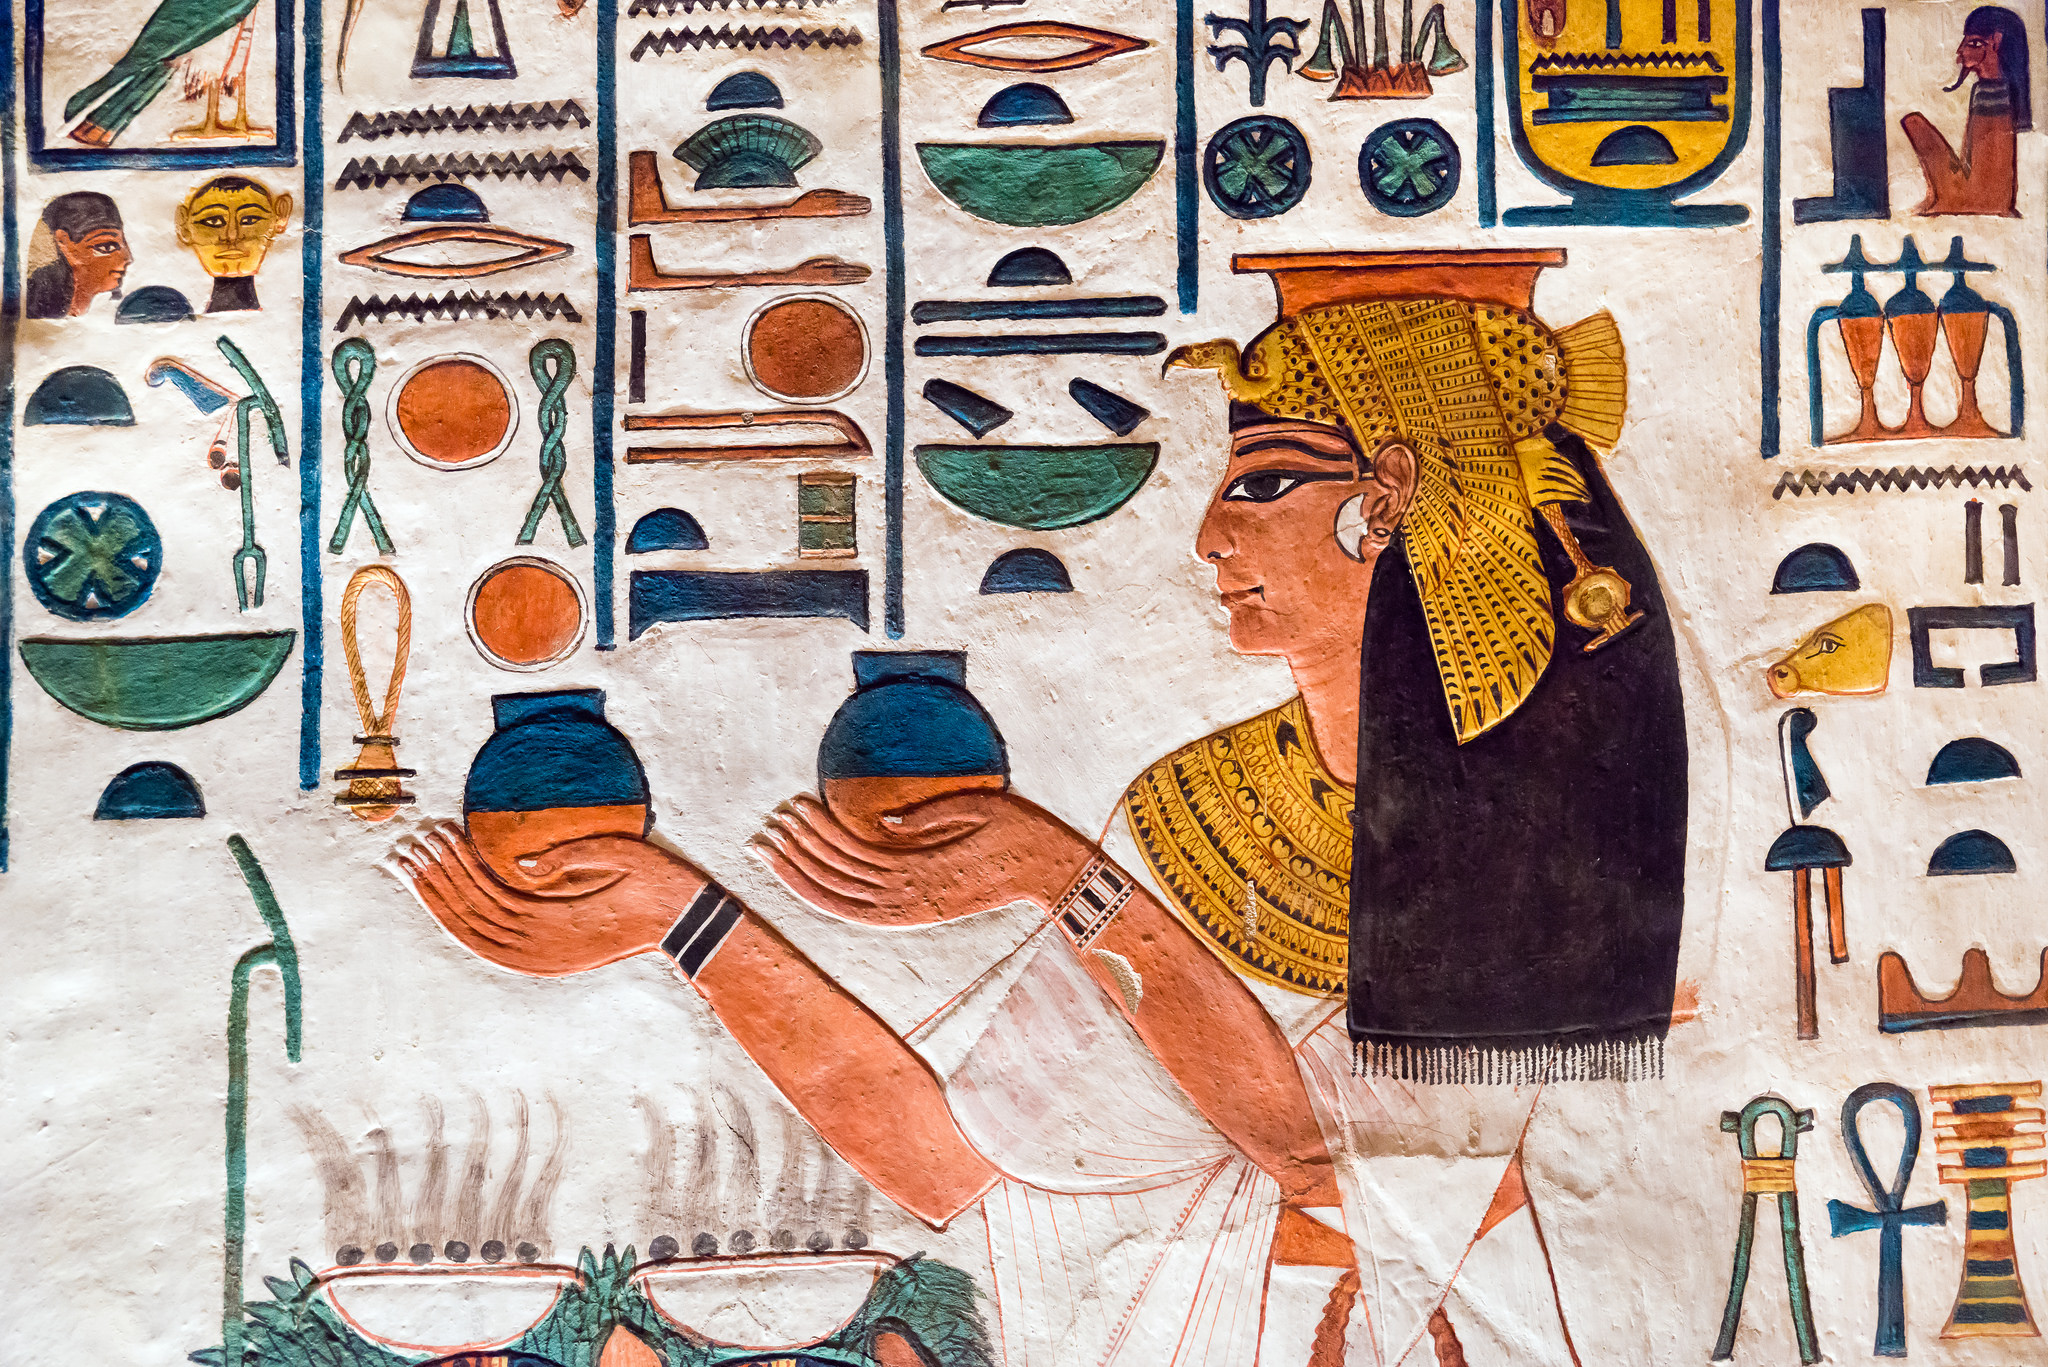 Step right up and marry your brother! - This image from queen Nefertari's tomb comes courtesy of kairoinfo4u on Flickr.